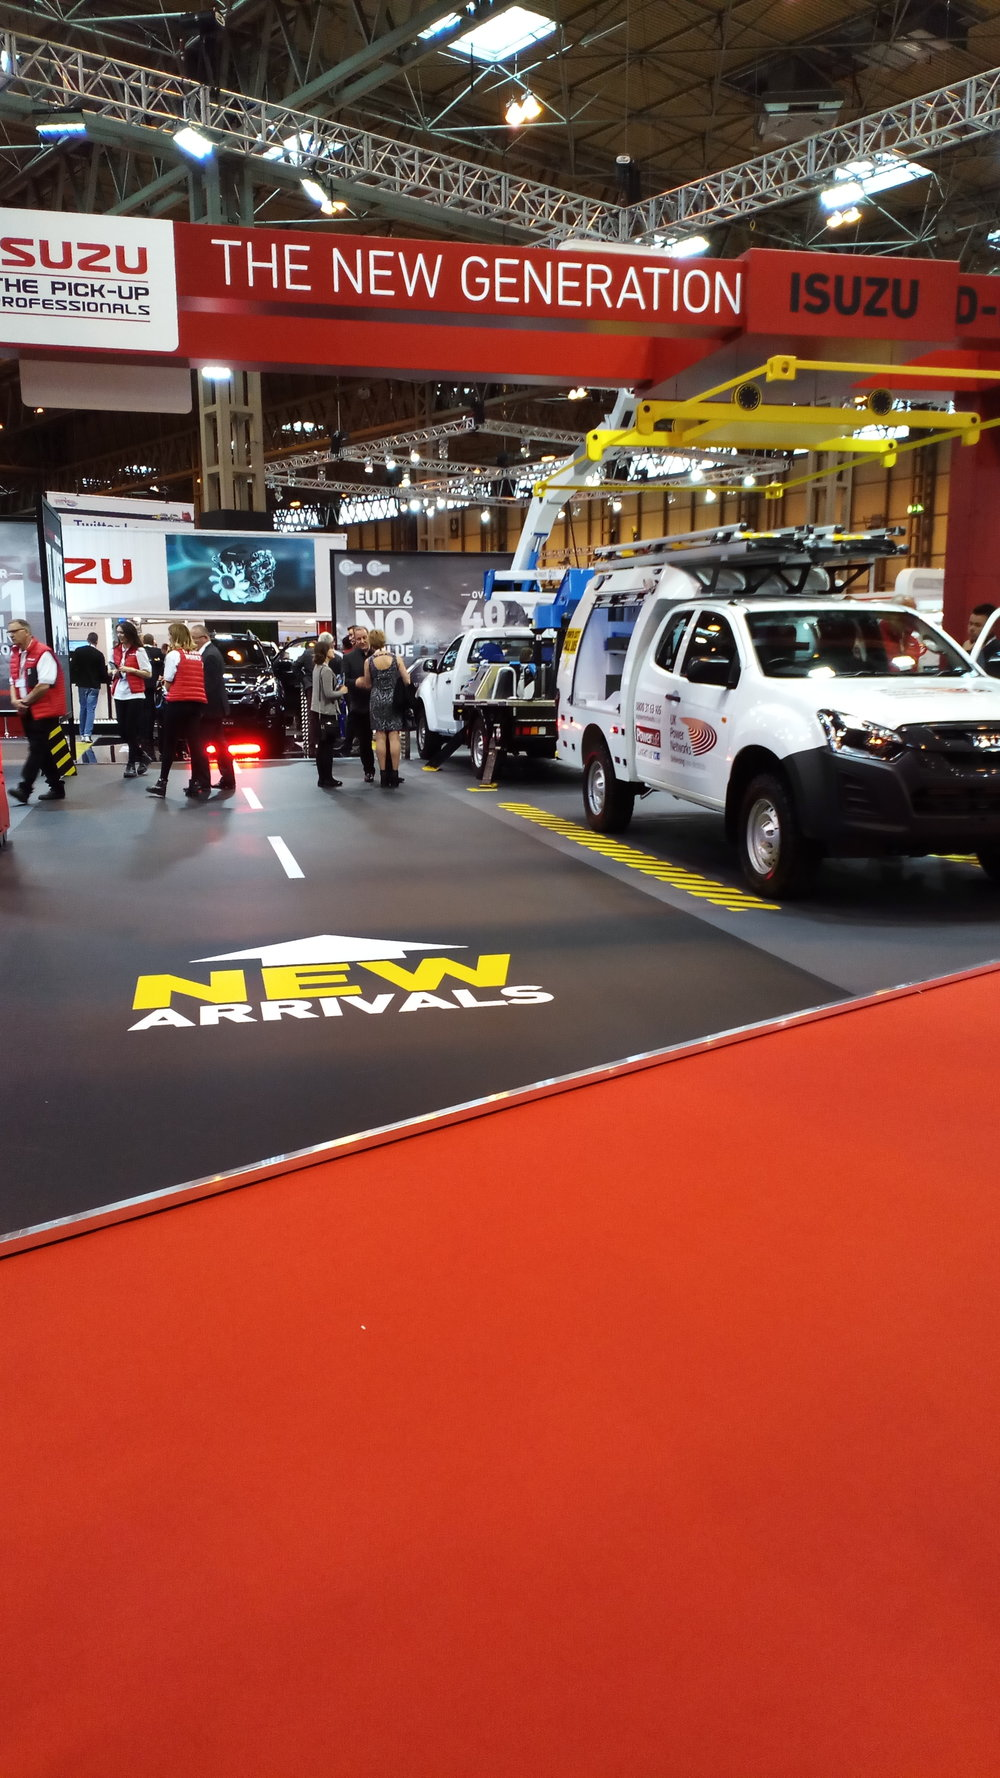 Image of Isuzu Stand - Commercial Vehicle Show 2017